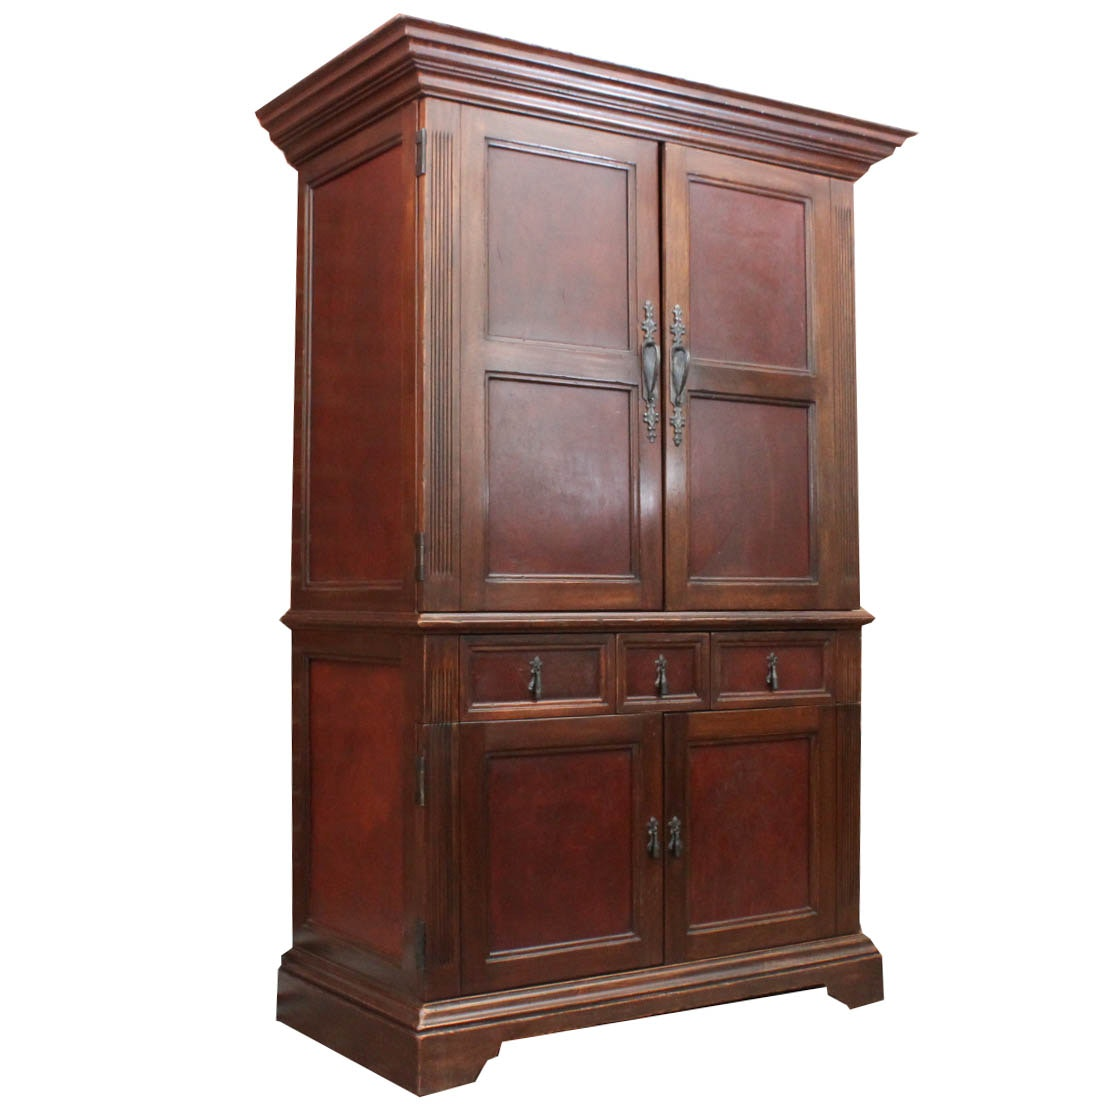 Handcrafted Peruvian Entertainment Armoire by South Cone Trading Company